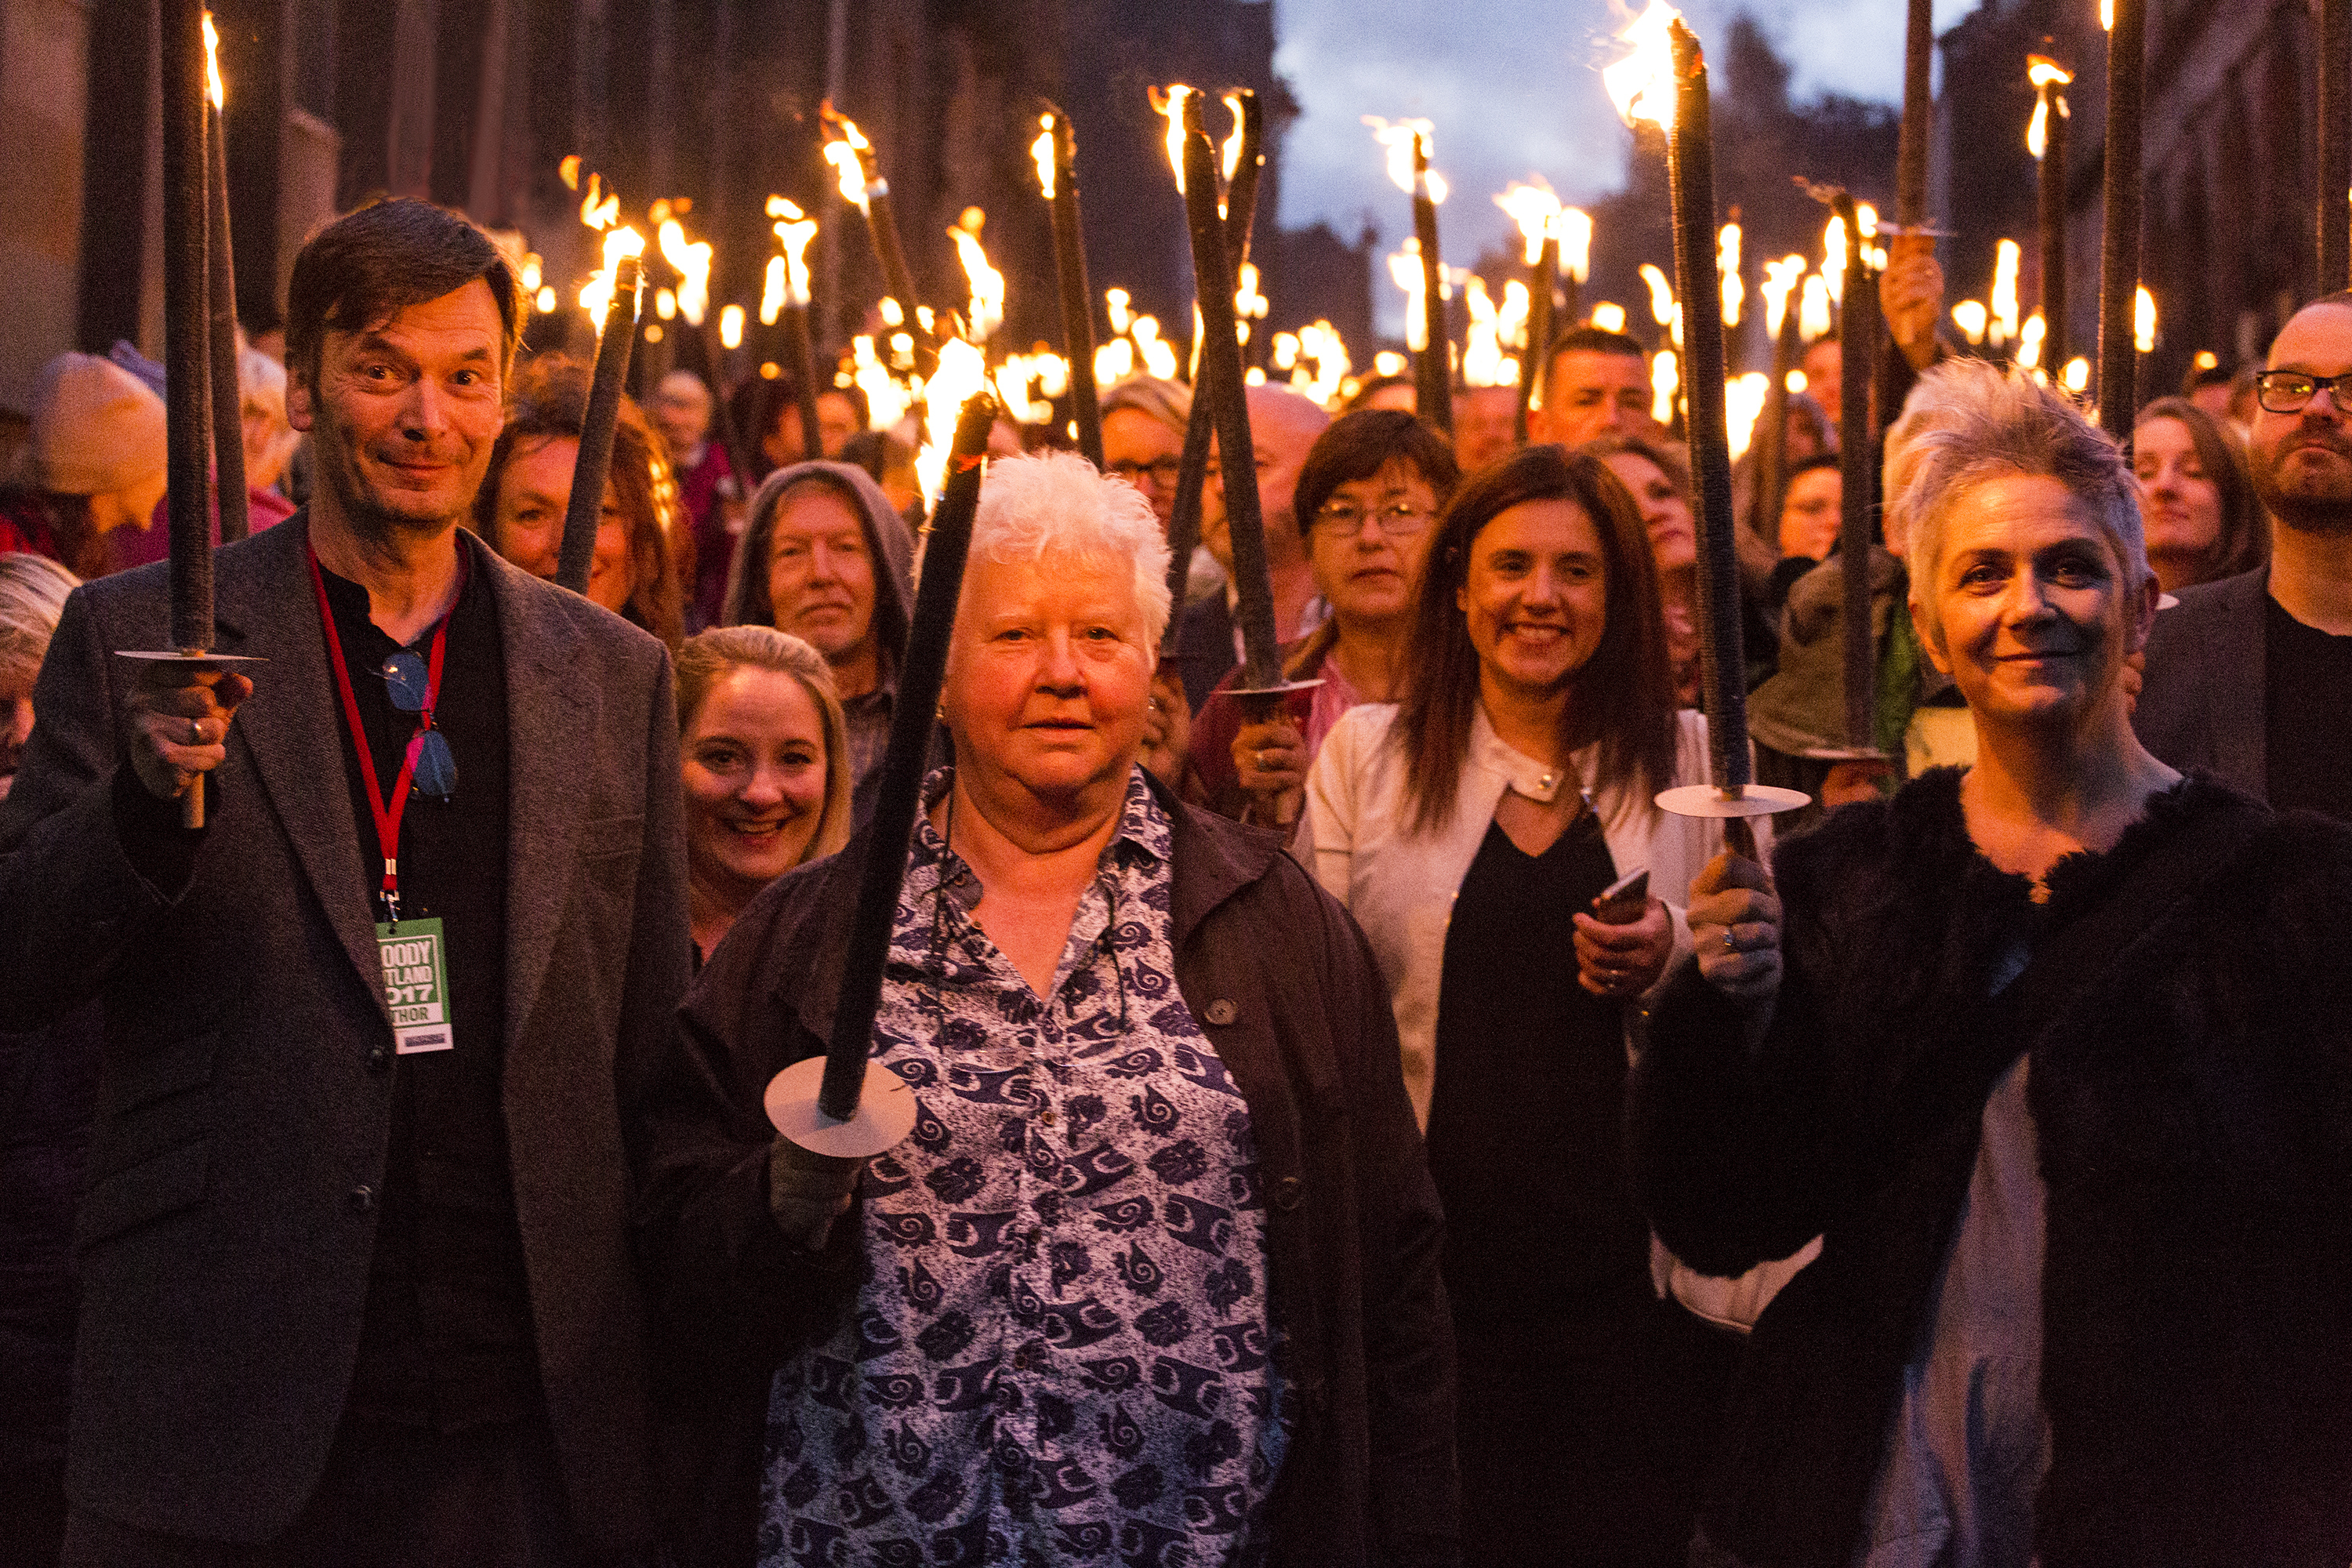 Ian Rankin, Val McDermid and Denise Mina at Bloody Scotland's opening parade last year (Paul Reich)